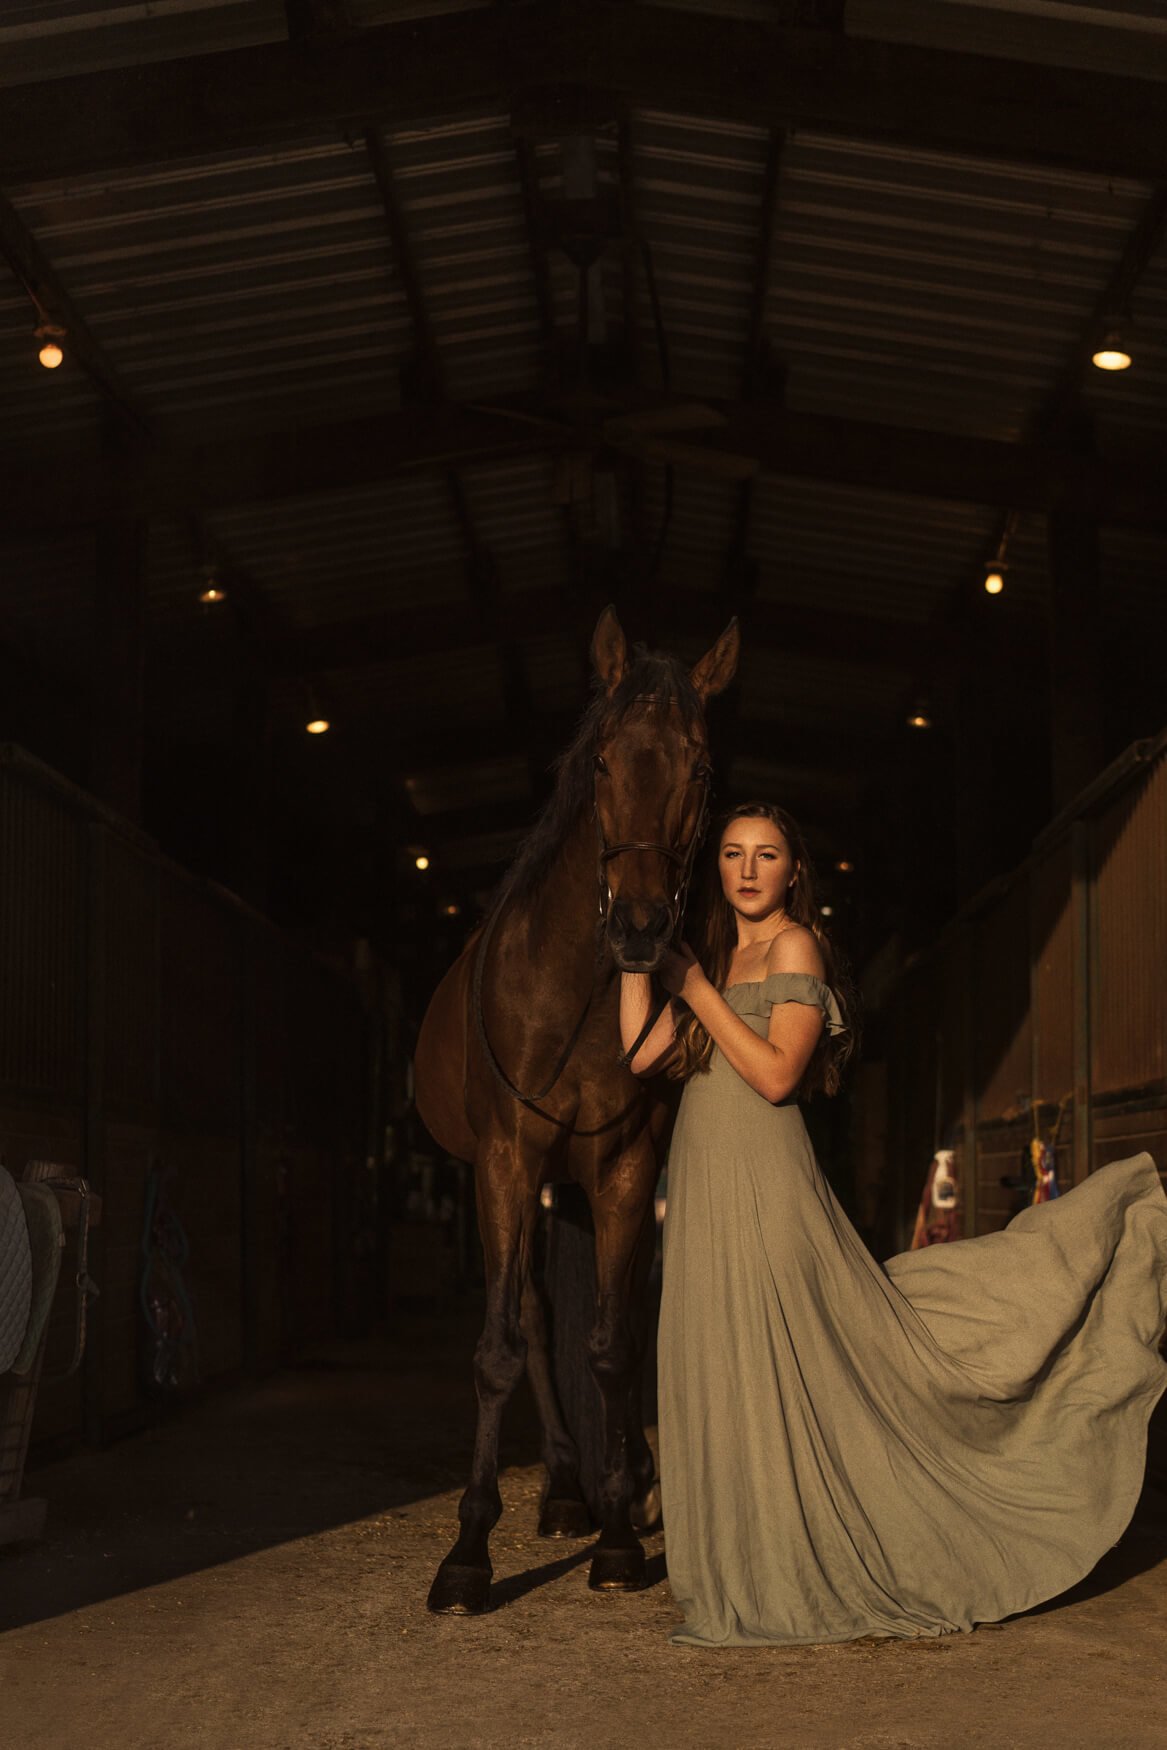 Highschool Senior portraits with a horse